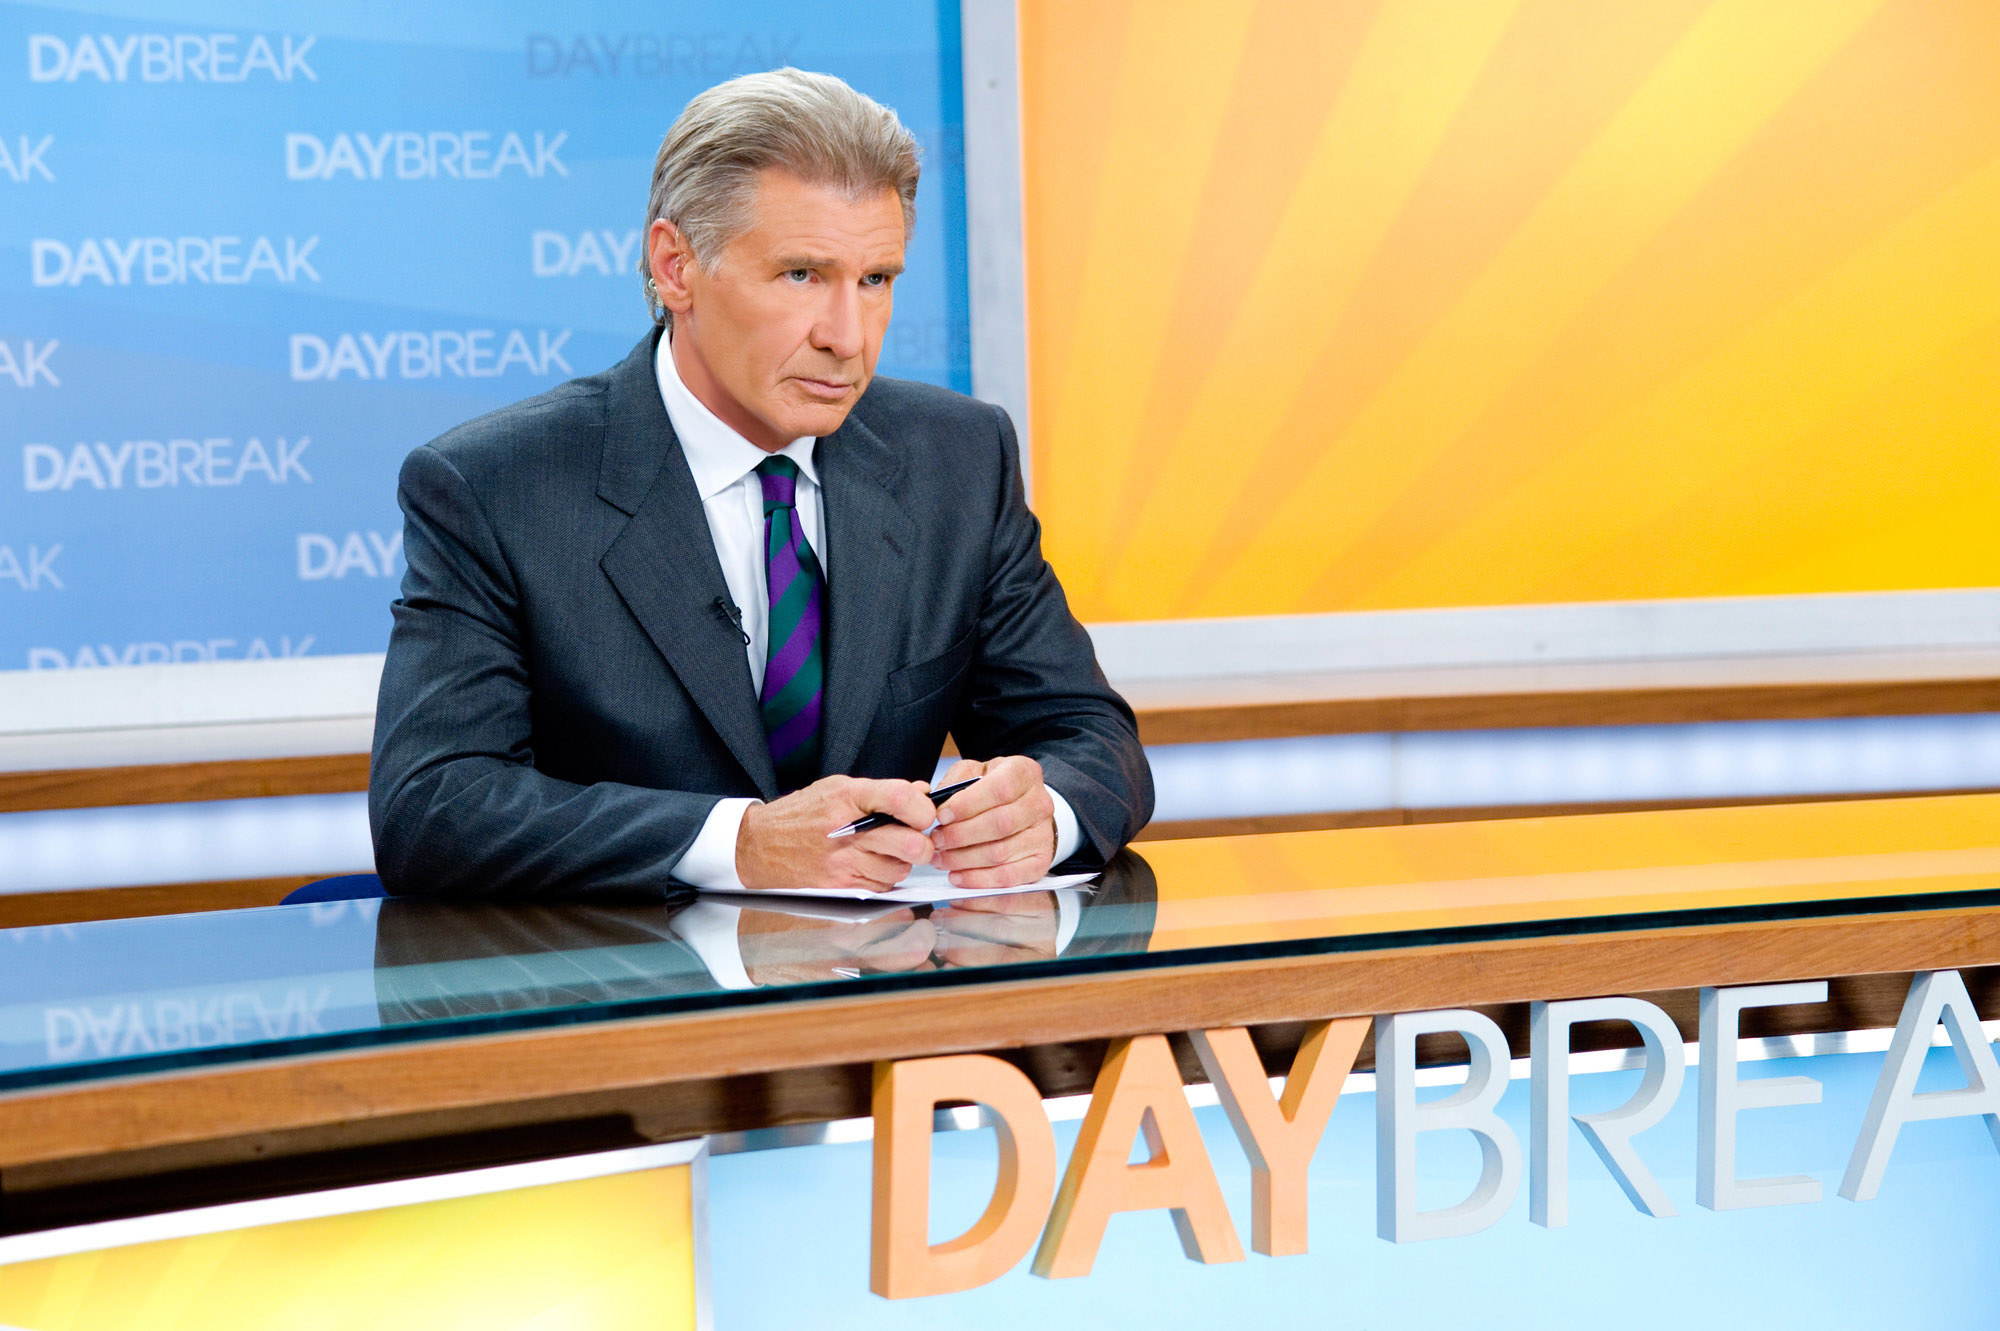 Harrison Ford sits behind a news desk